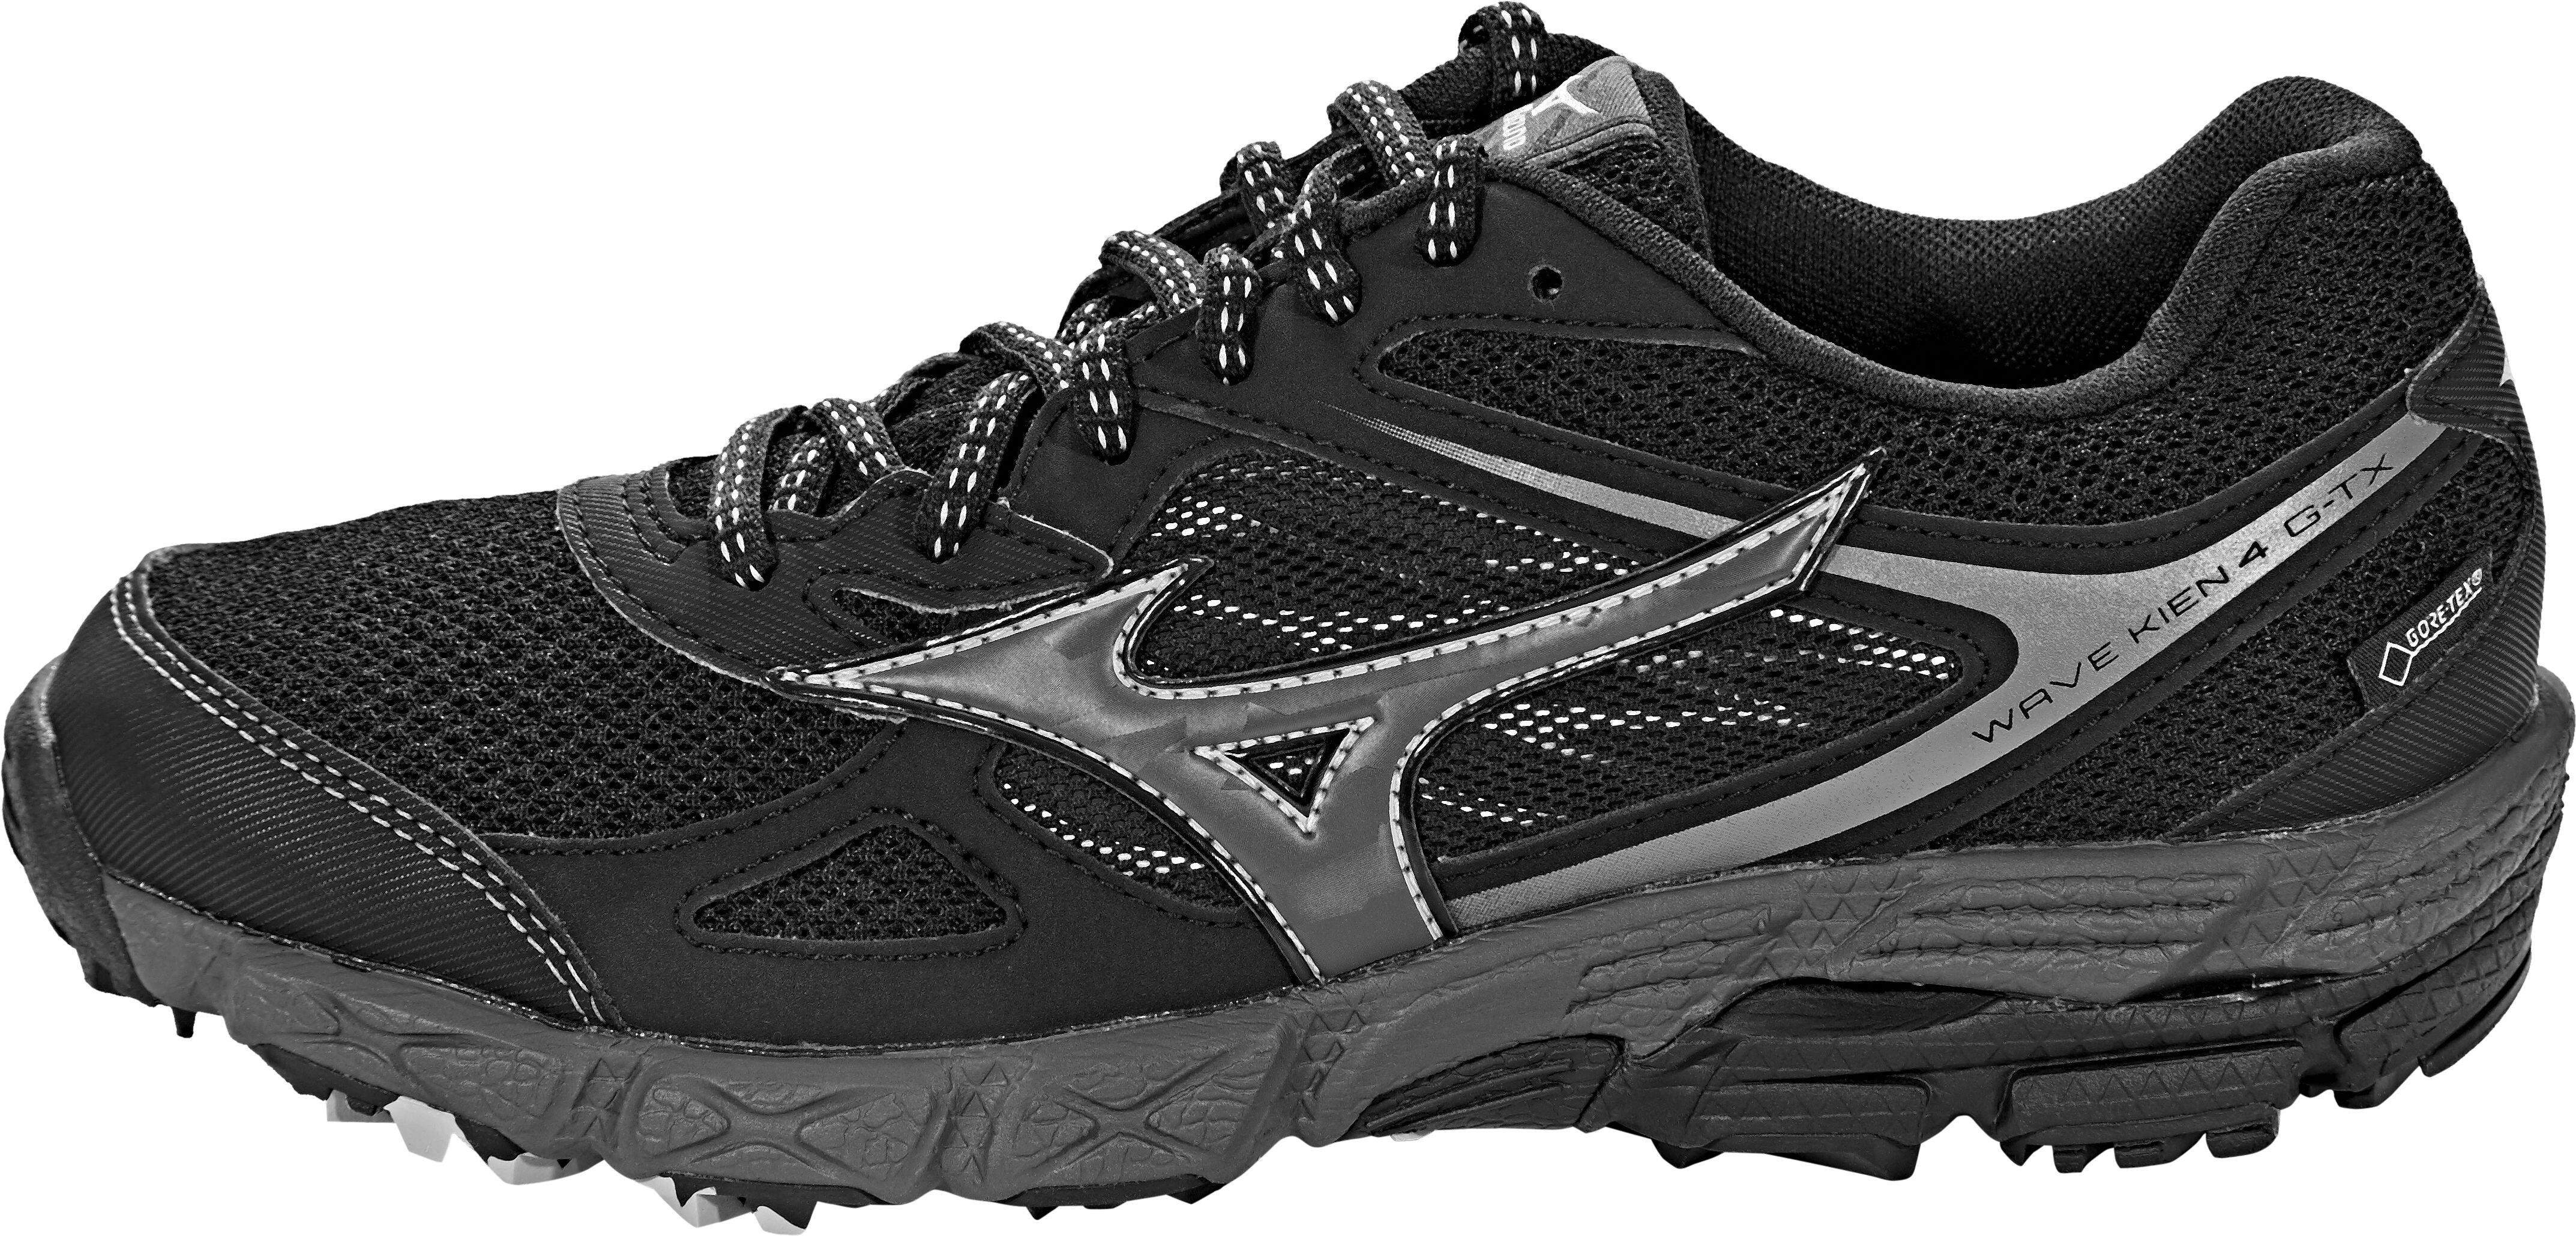 Mizuno Wave Kien 4 G-TX Running Shoes Women grey black at Bikester.co.uk a8a973e1c62